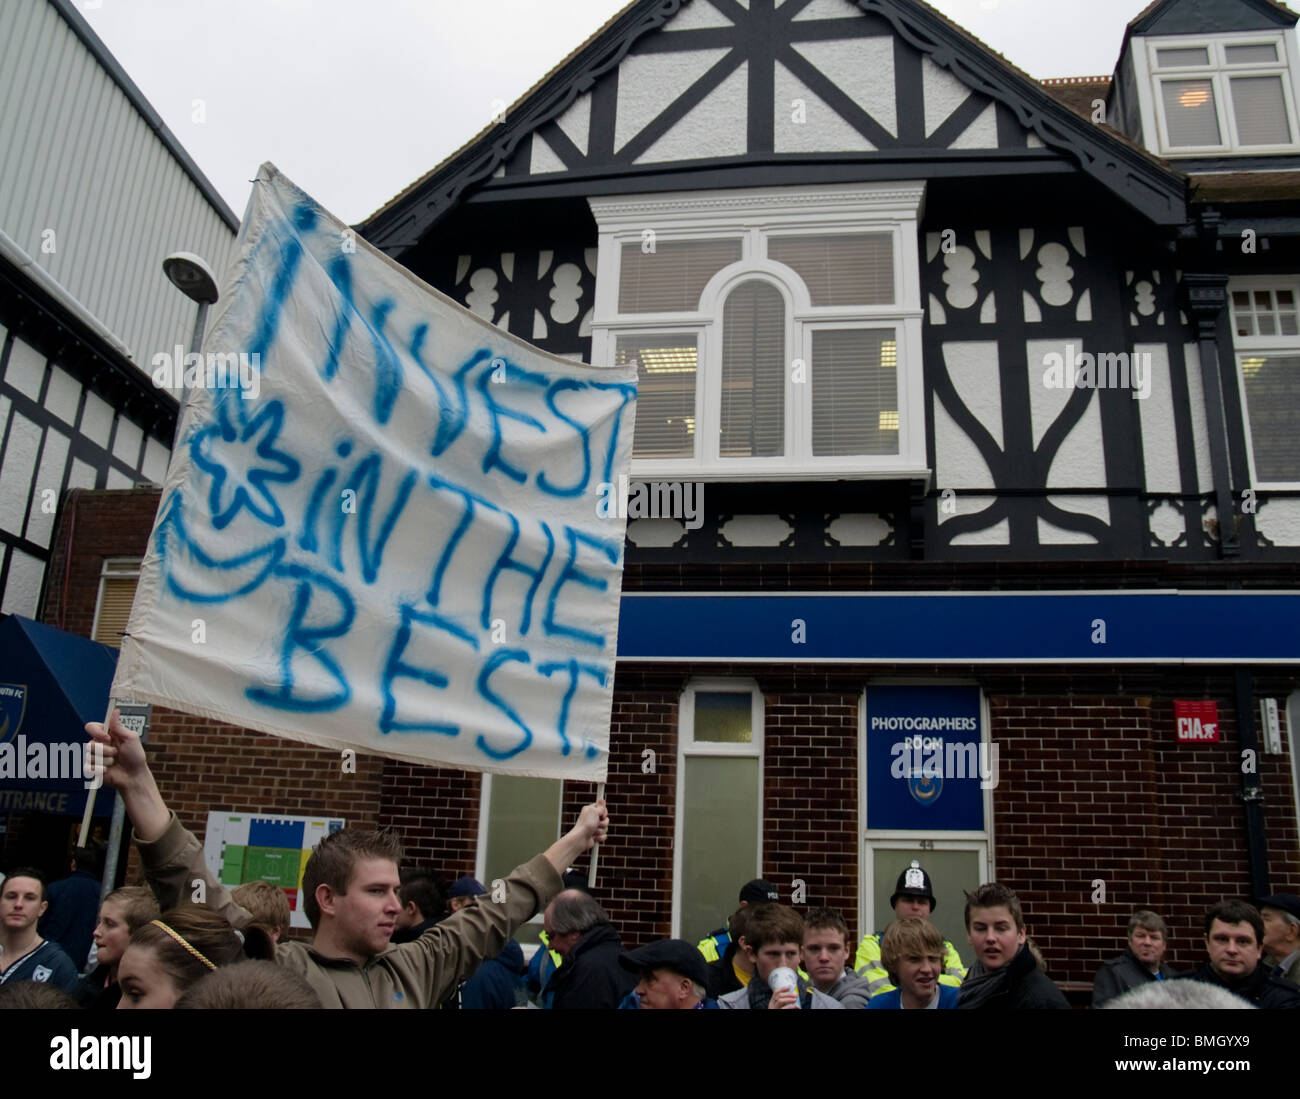 Portsmouth Protester, Portsmouth FC v Sunderland AFC FA Cup 4th Round 2010 - Stock Image